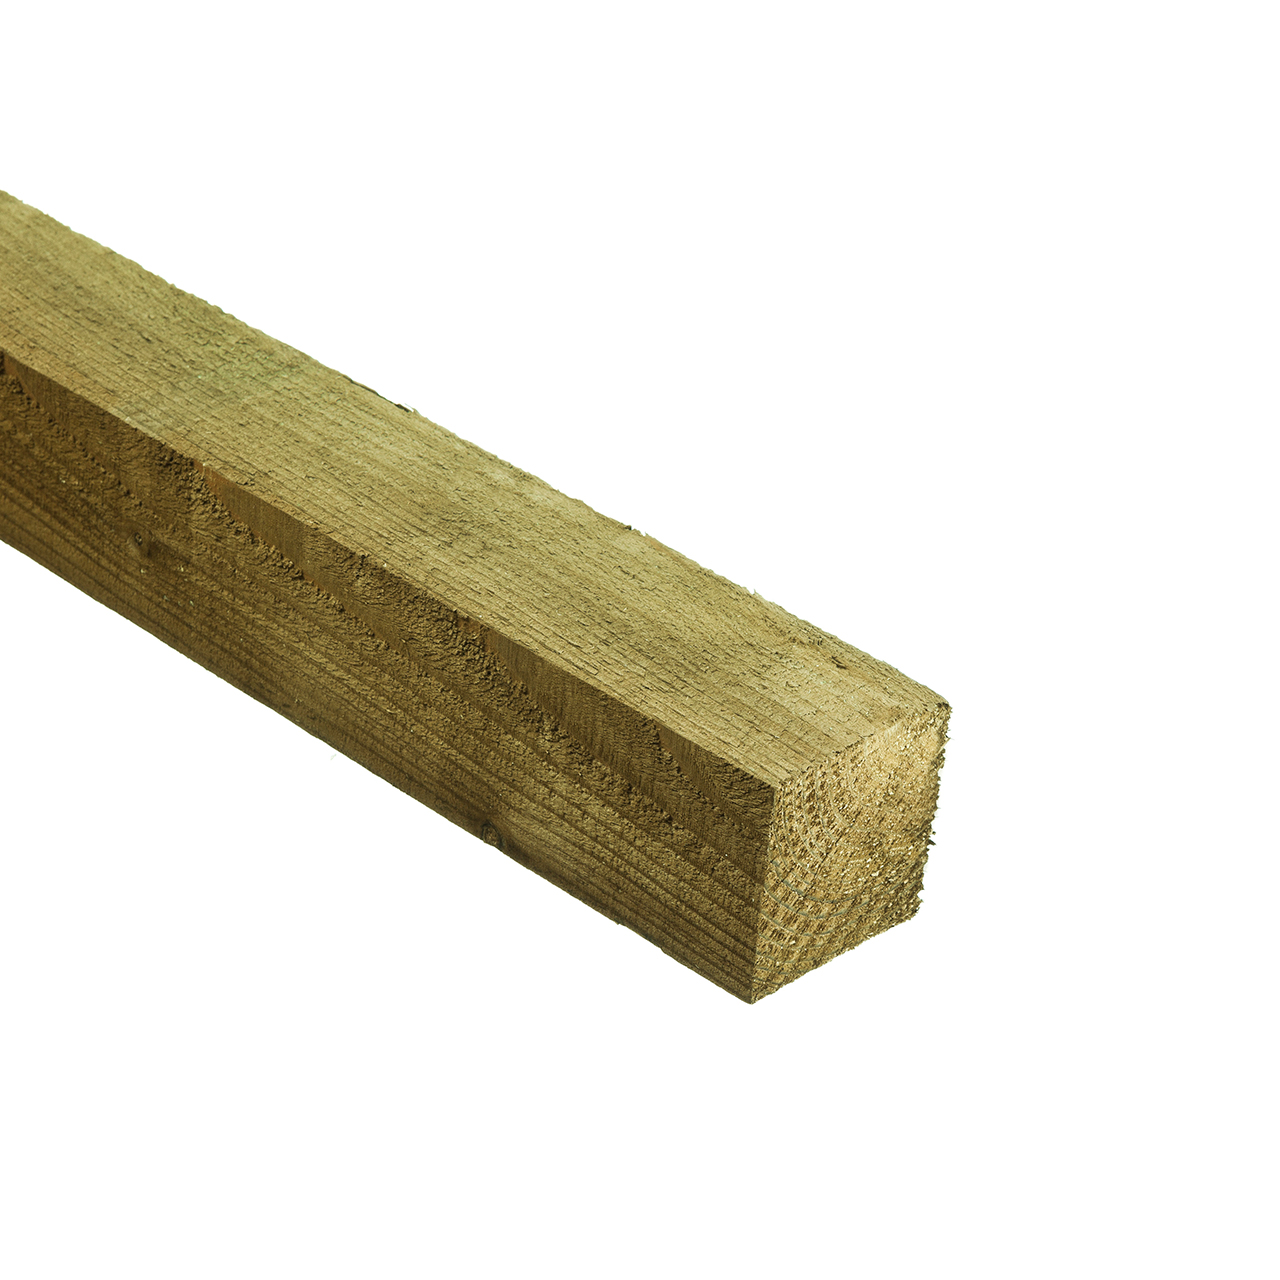 Fence Post Green Treated 75mm x 75mm x 1.8m image 0